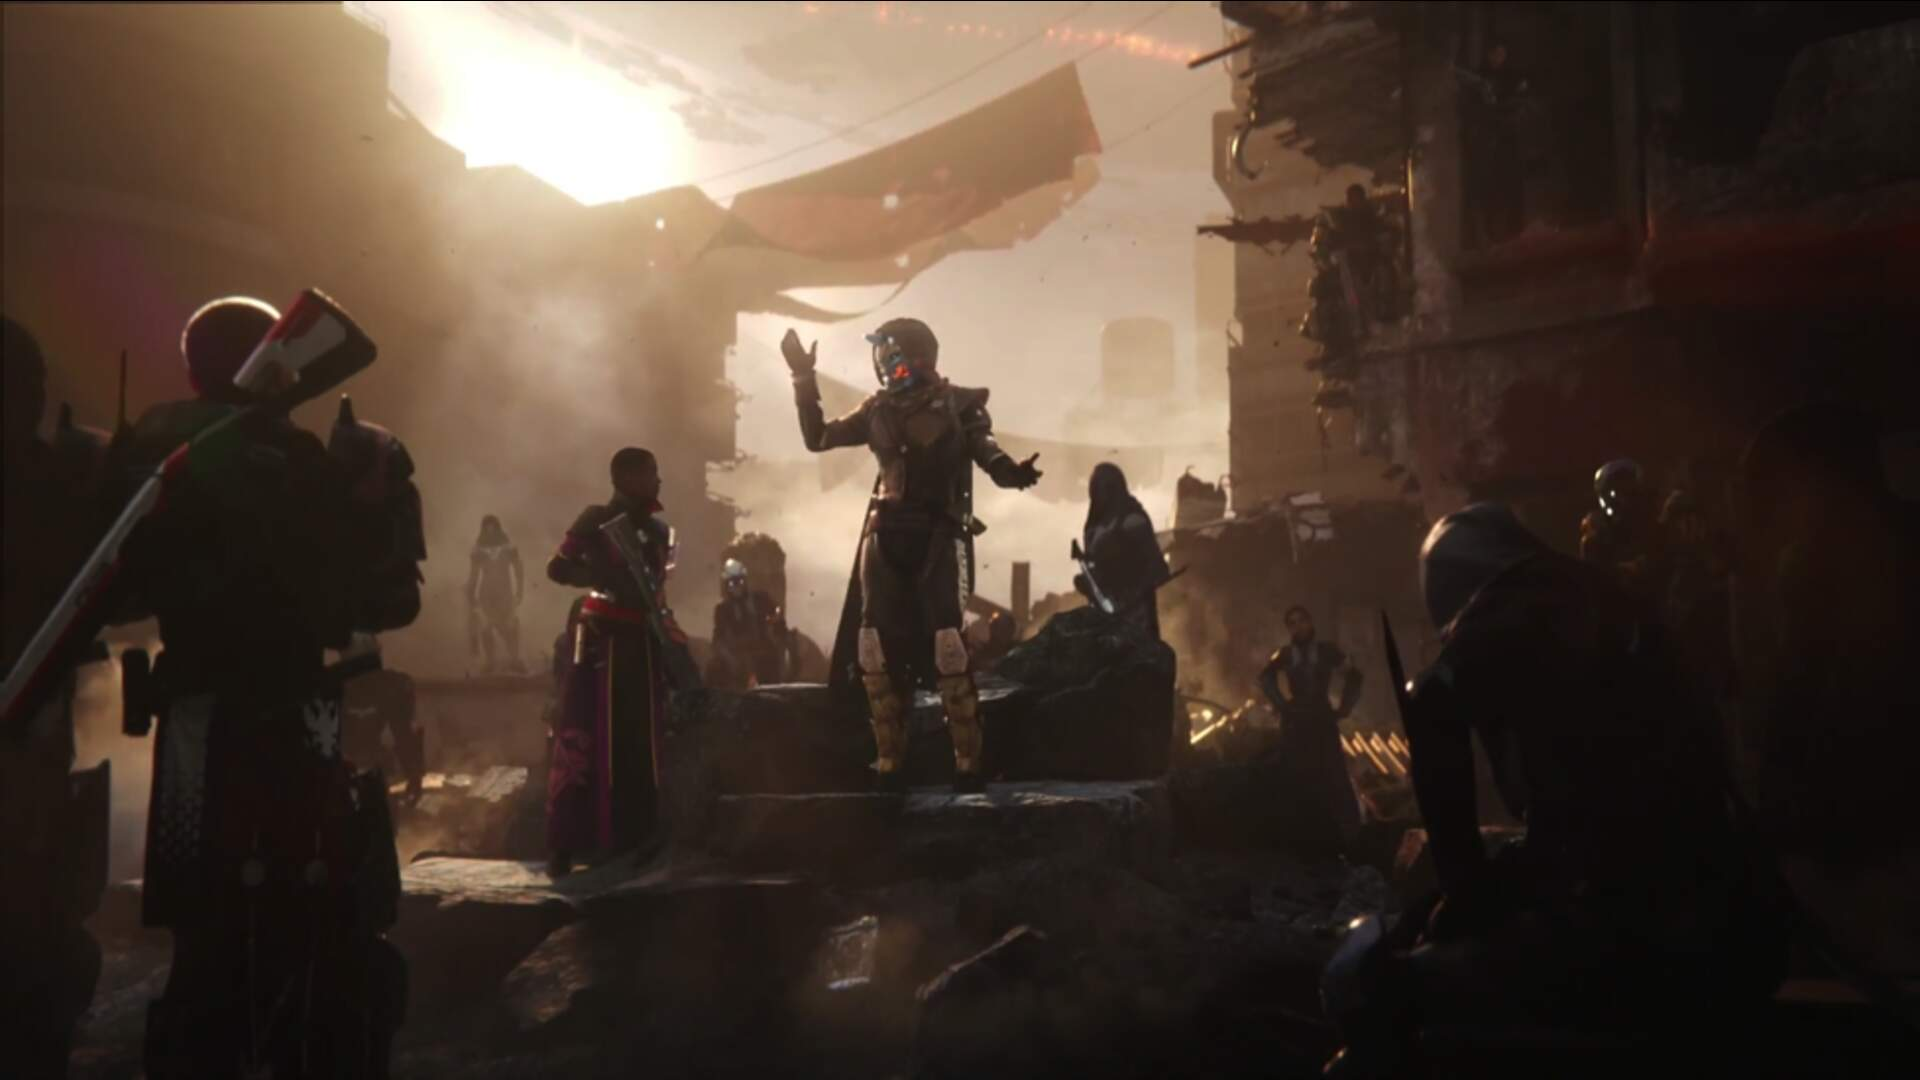 Destiny Fans React With Mostly Excitement for All the Destiny 2 News